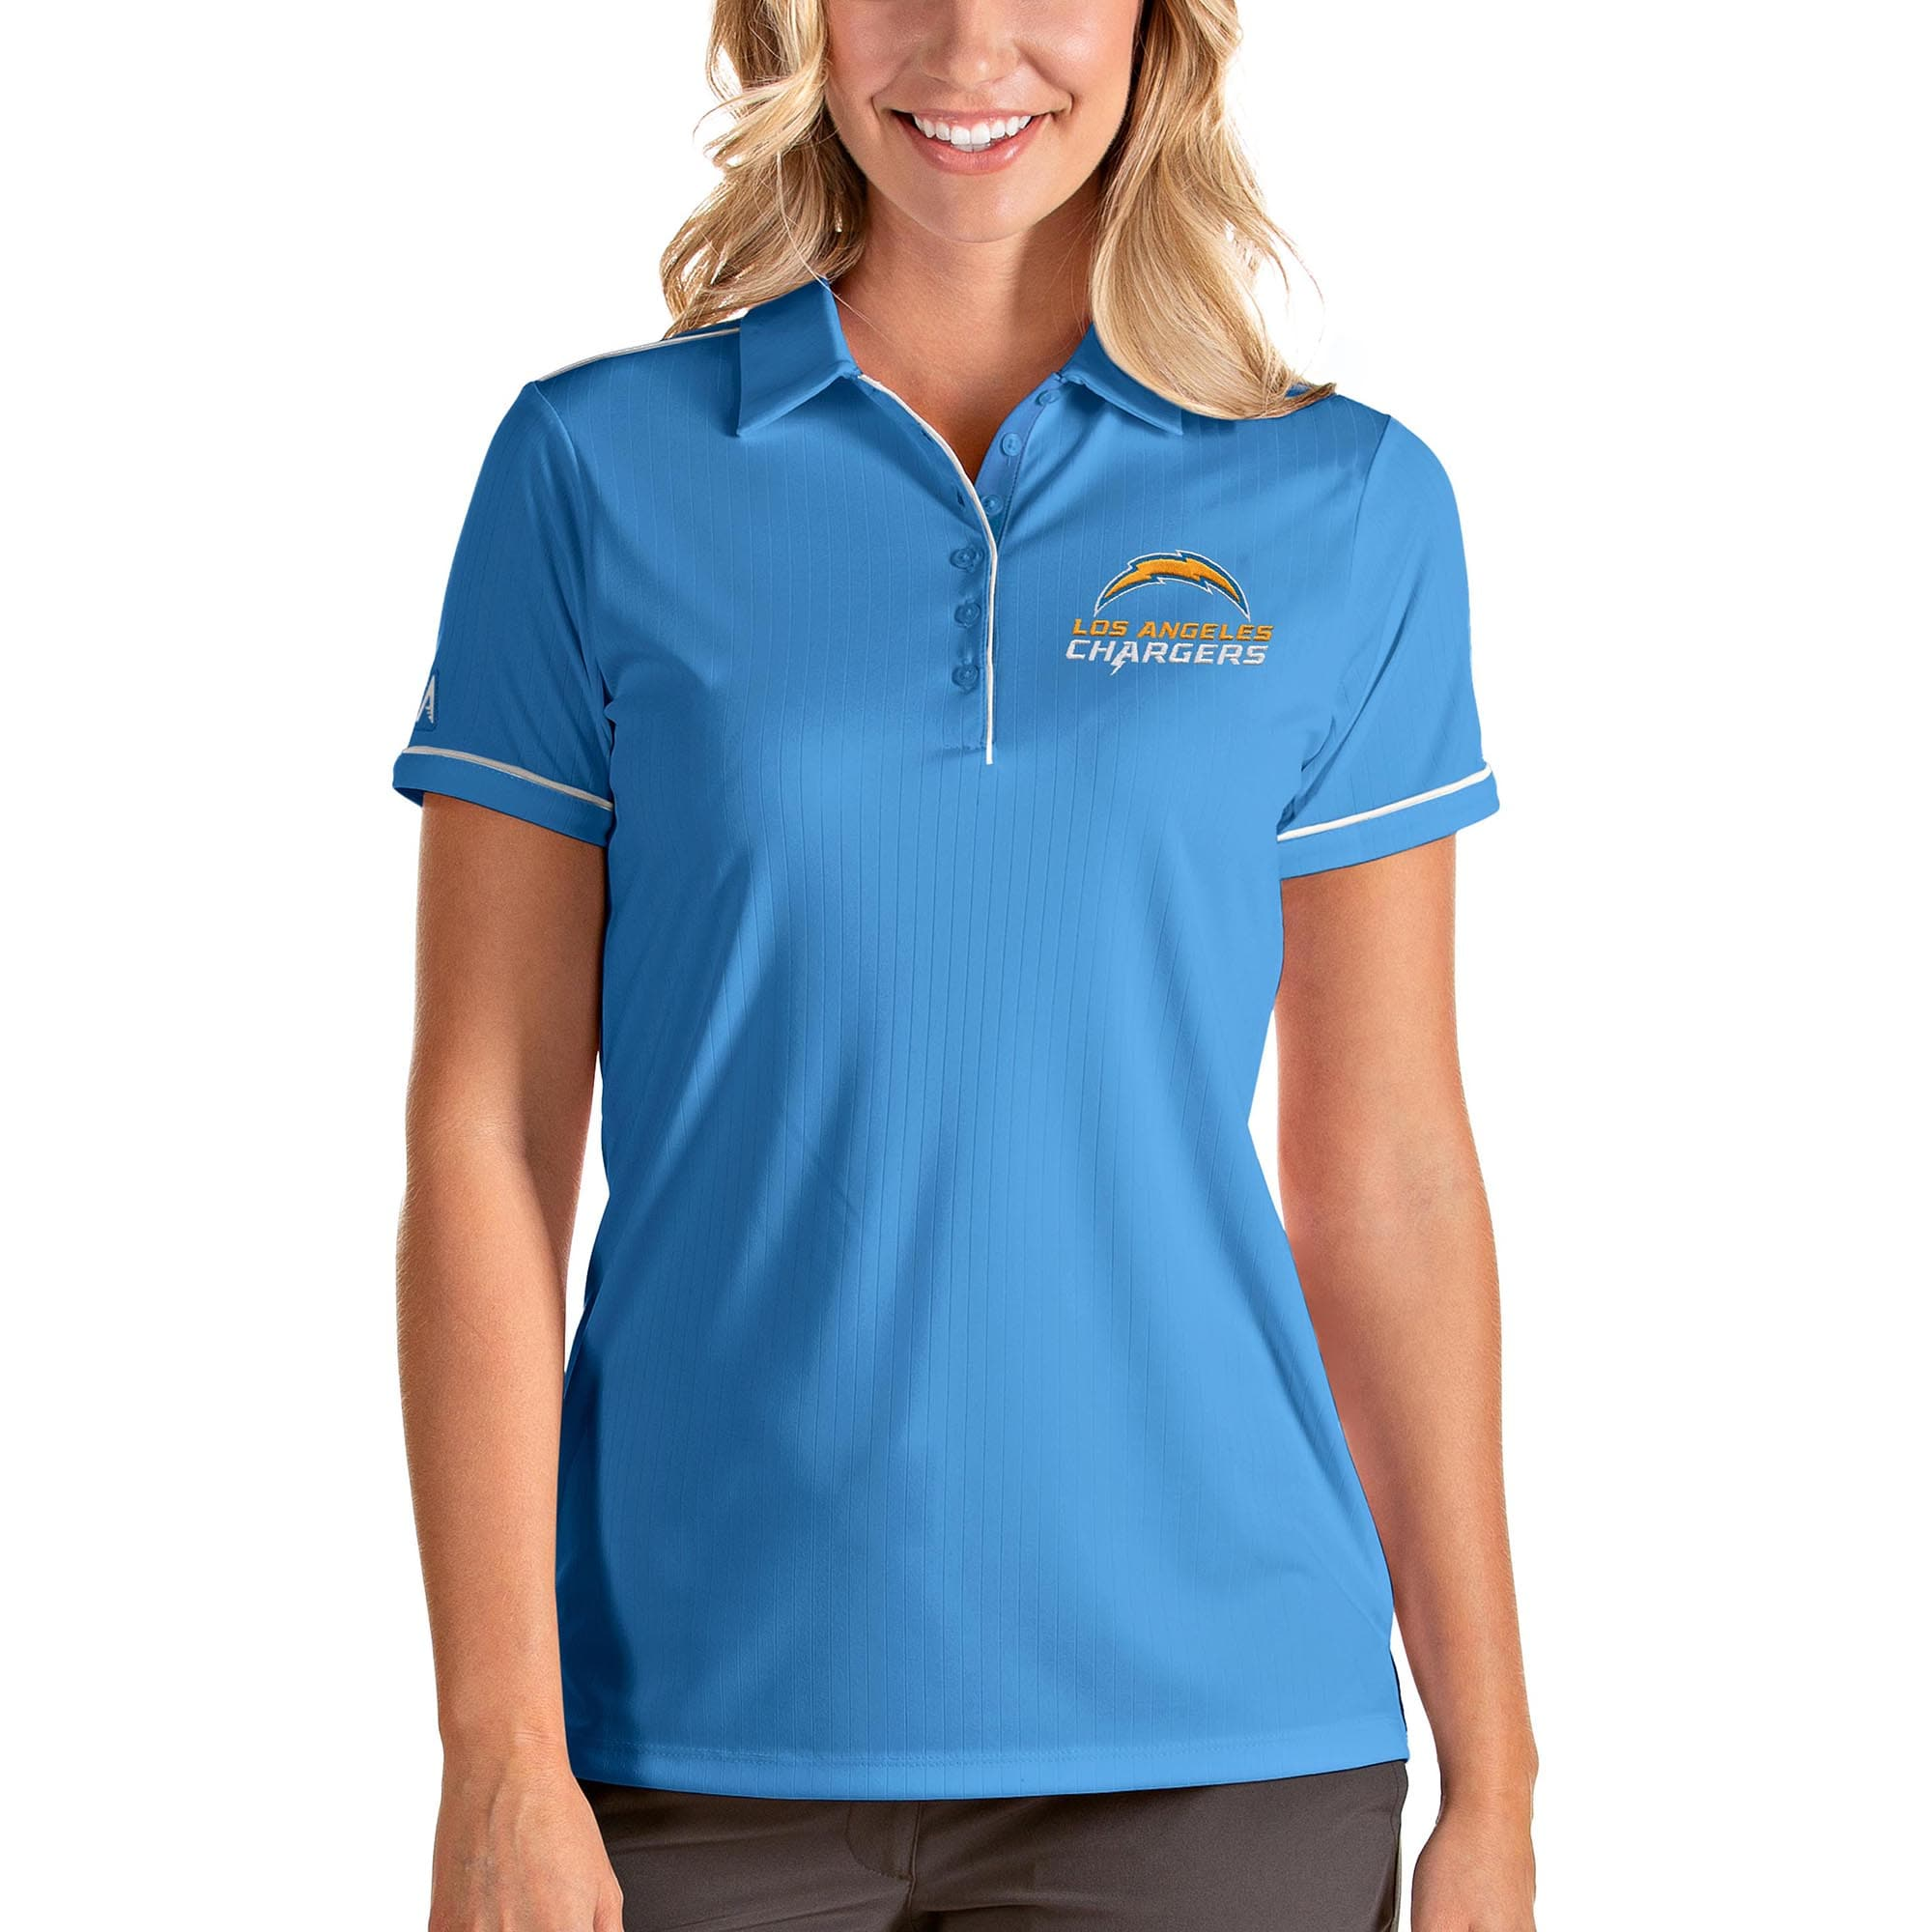 Los Angeles Chargers Antigua Women's Team Salute Polo - Blue